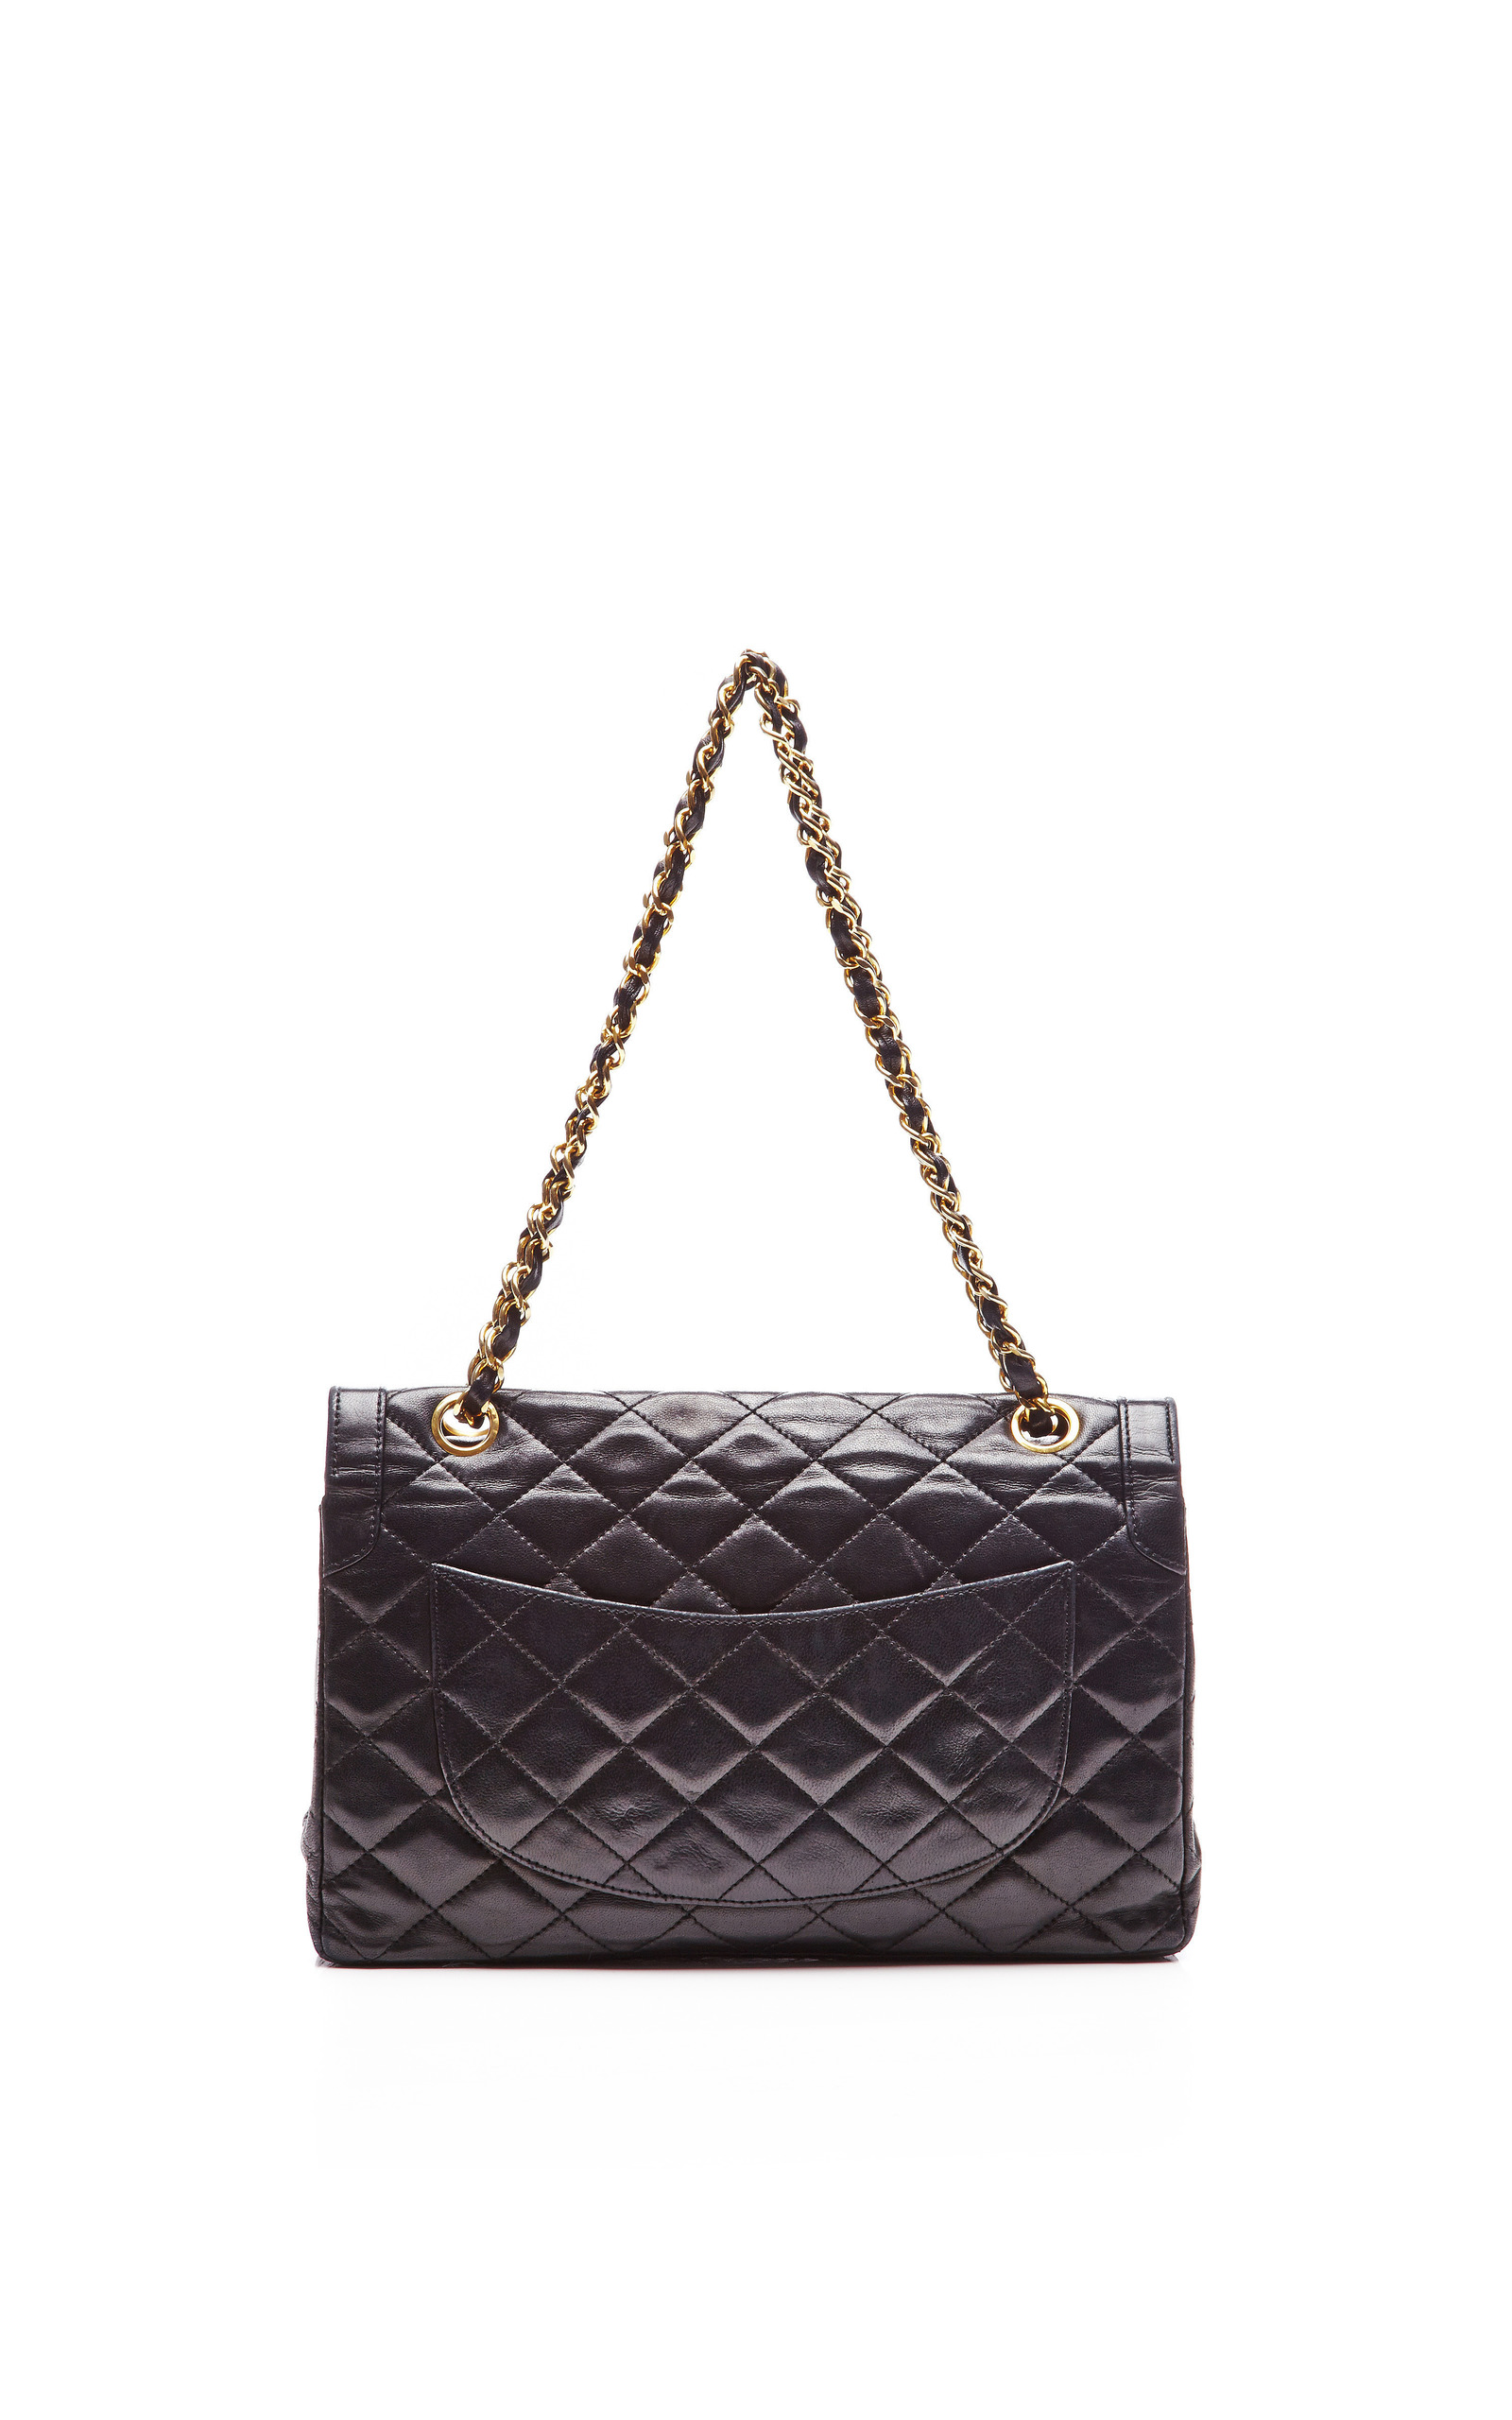 Chanel Black Quilted Lambskin Limited Edition 2.55 Bag  5f7ead5b382bb